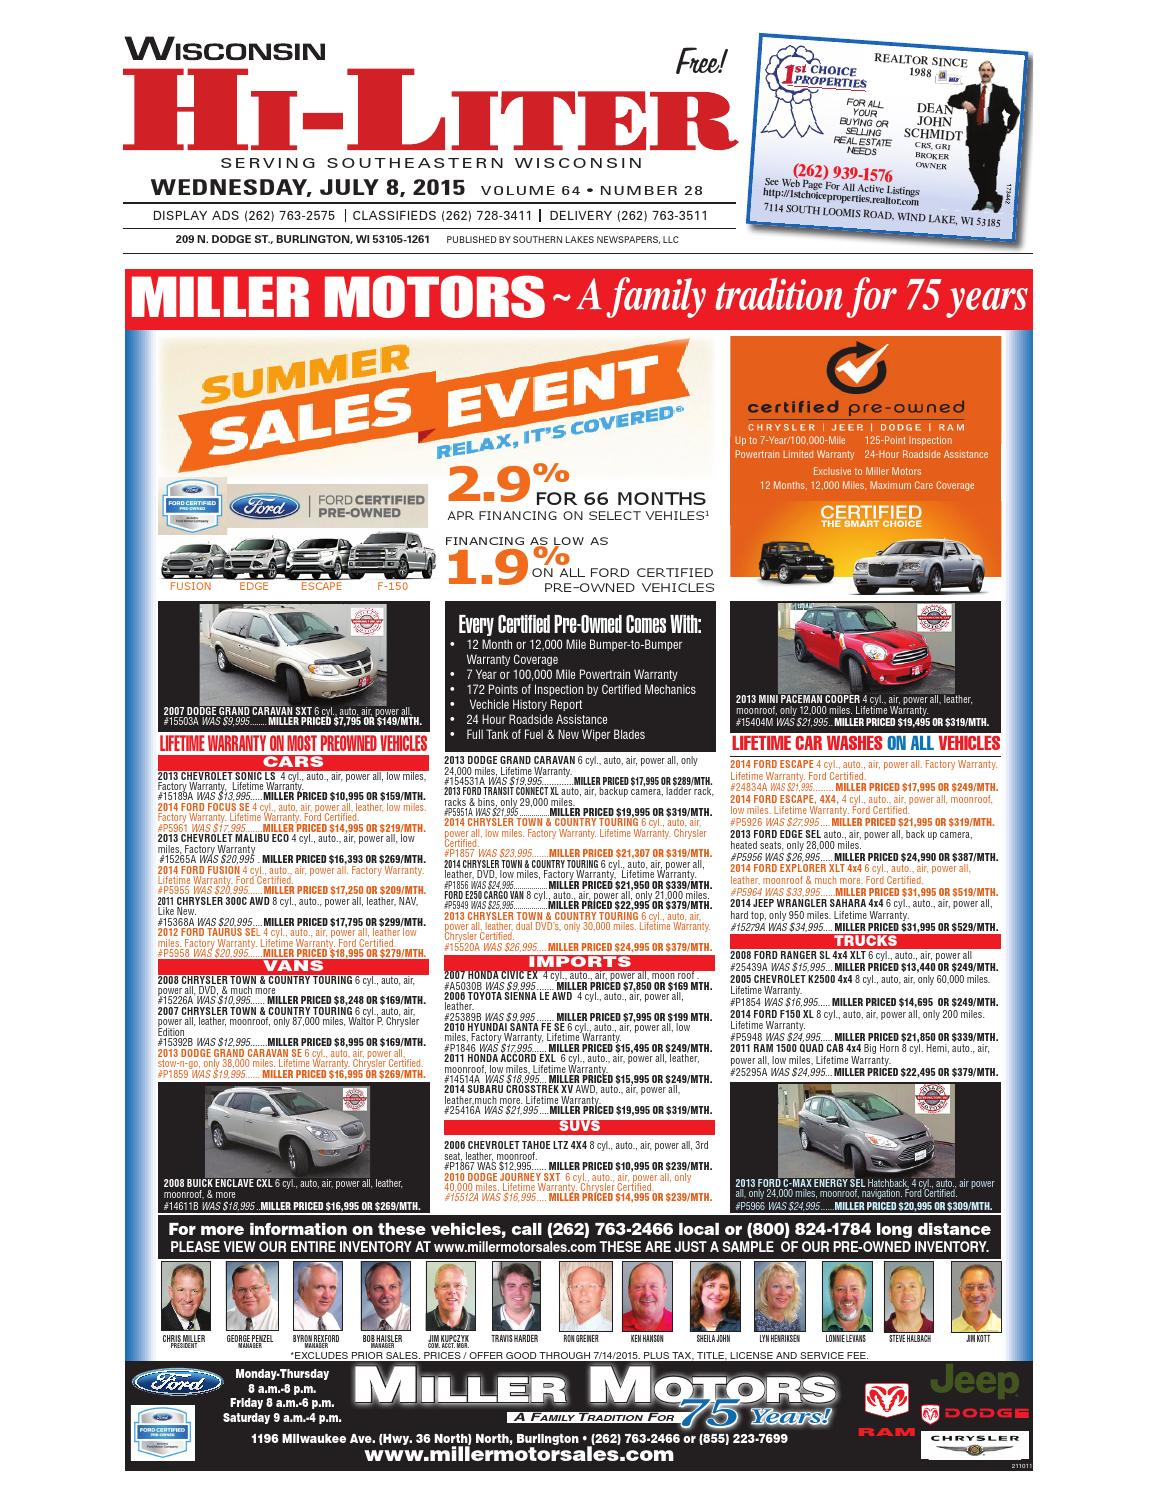 Wis final by southern lakes newspapers issuu for Miller motors burlington wisconsin